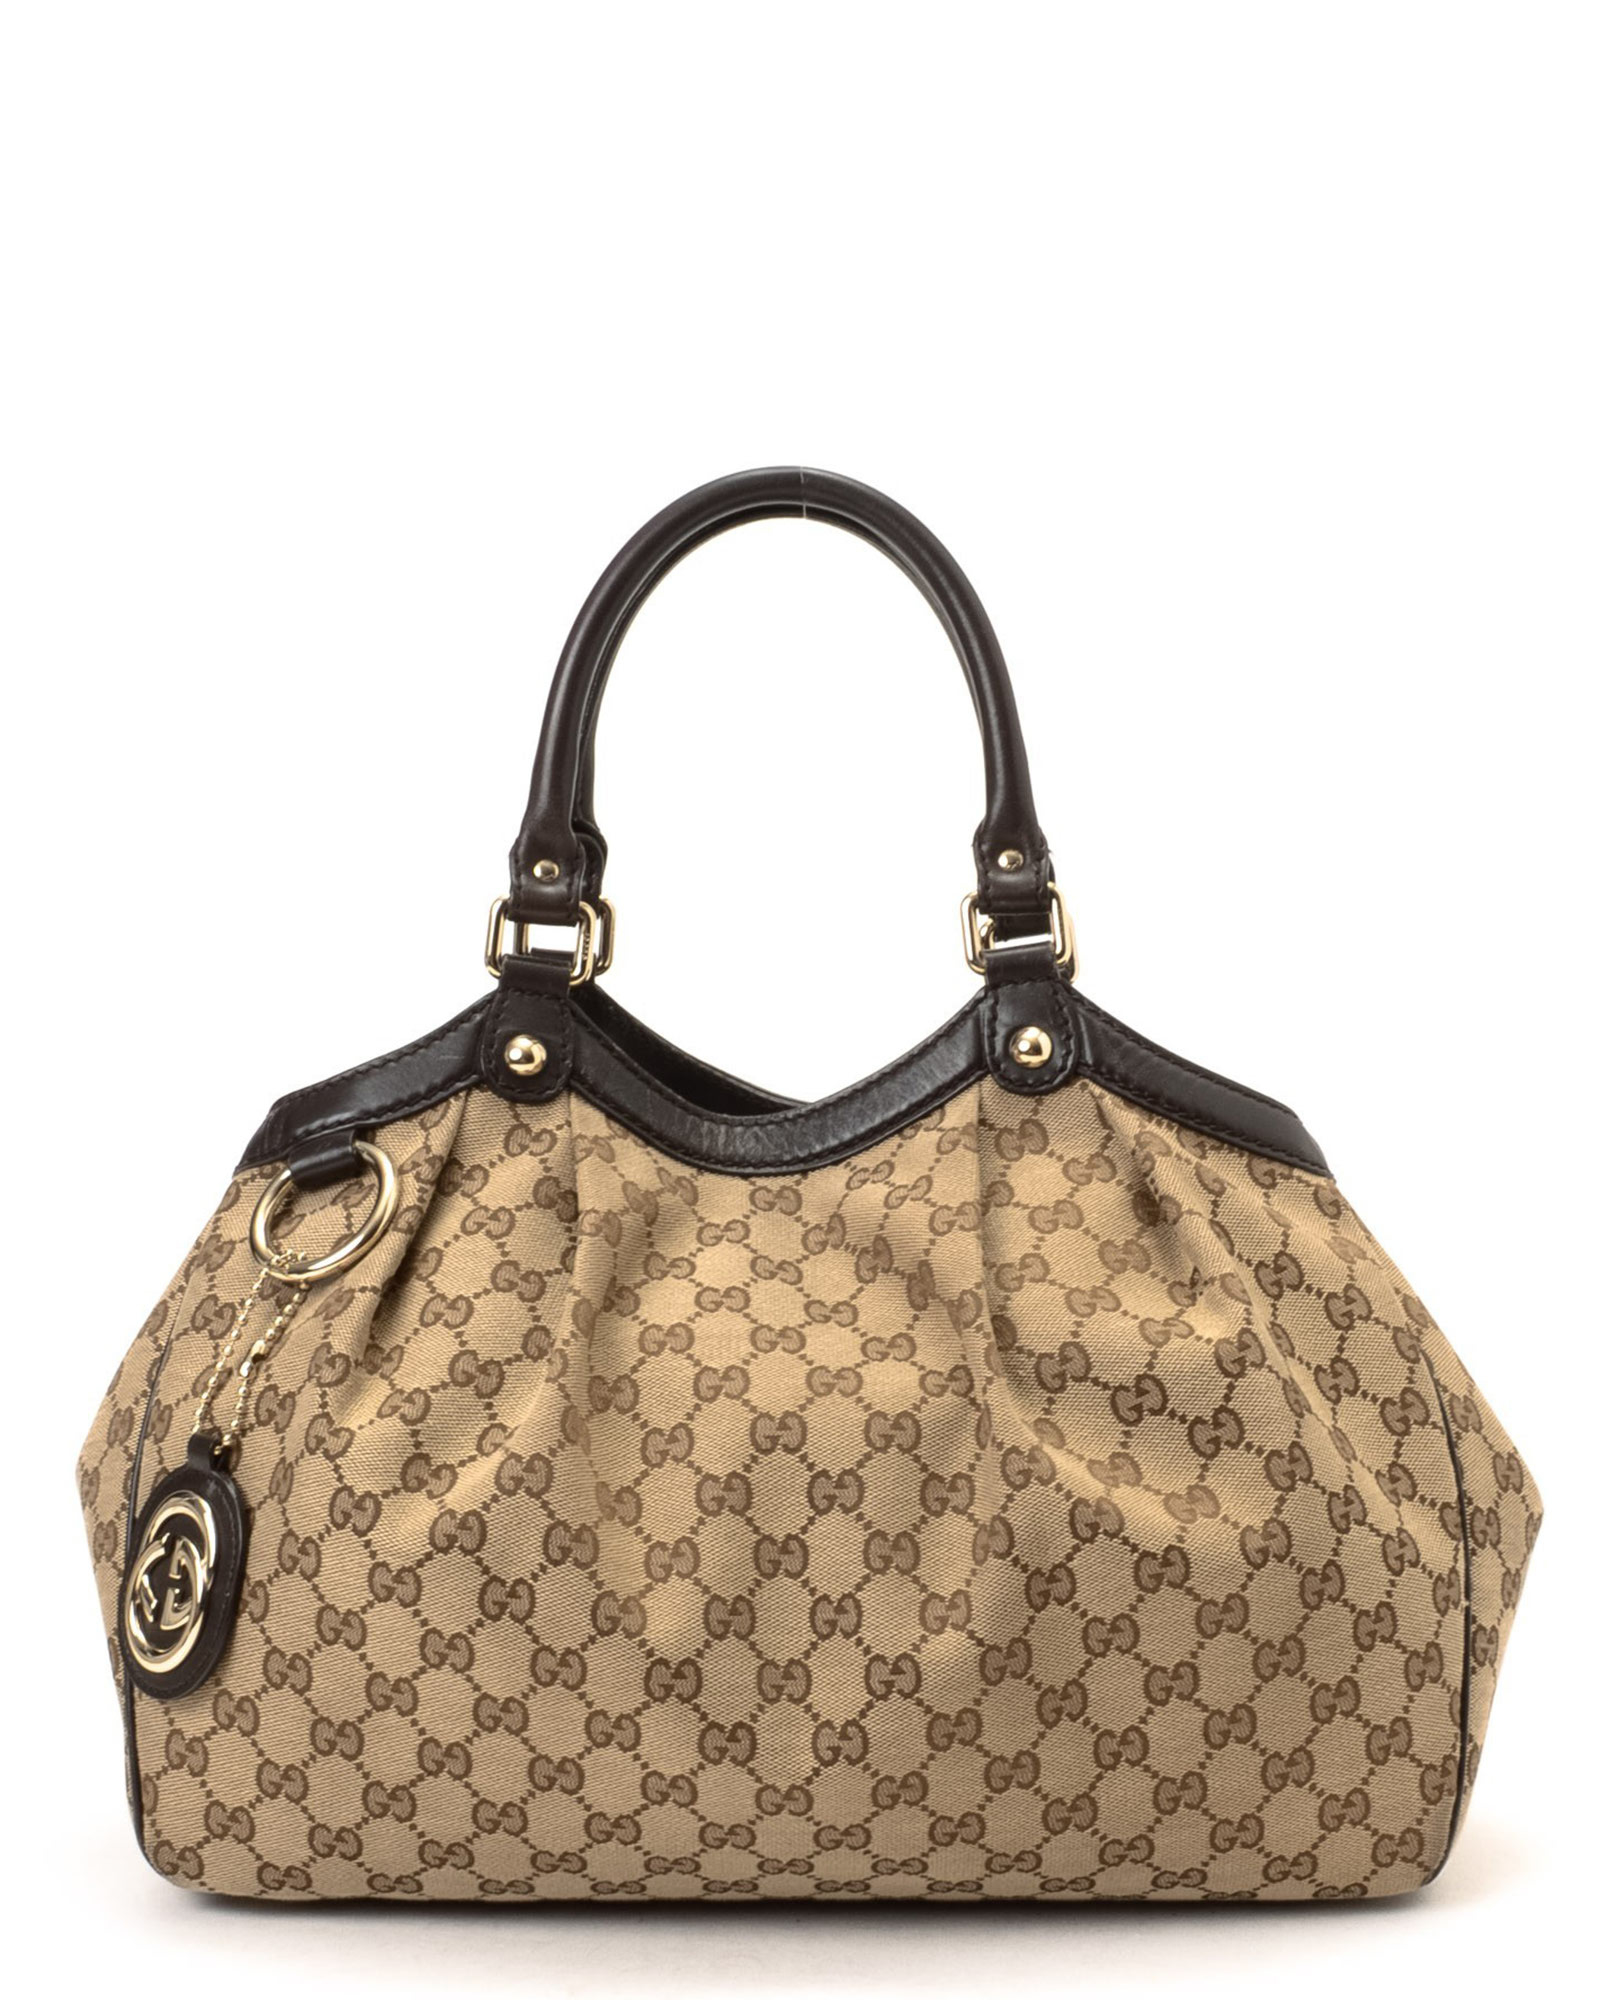 f2fa01a67d882a Gucci Tote Bag Vintage | Stanford Center for Opportunity Policy in ...